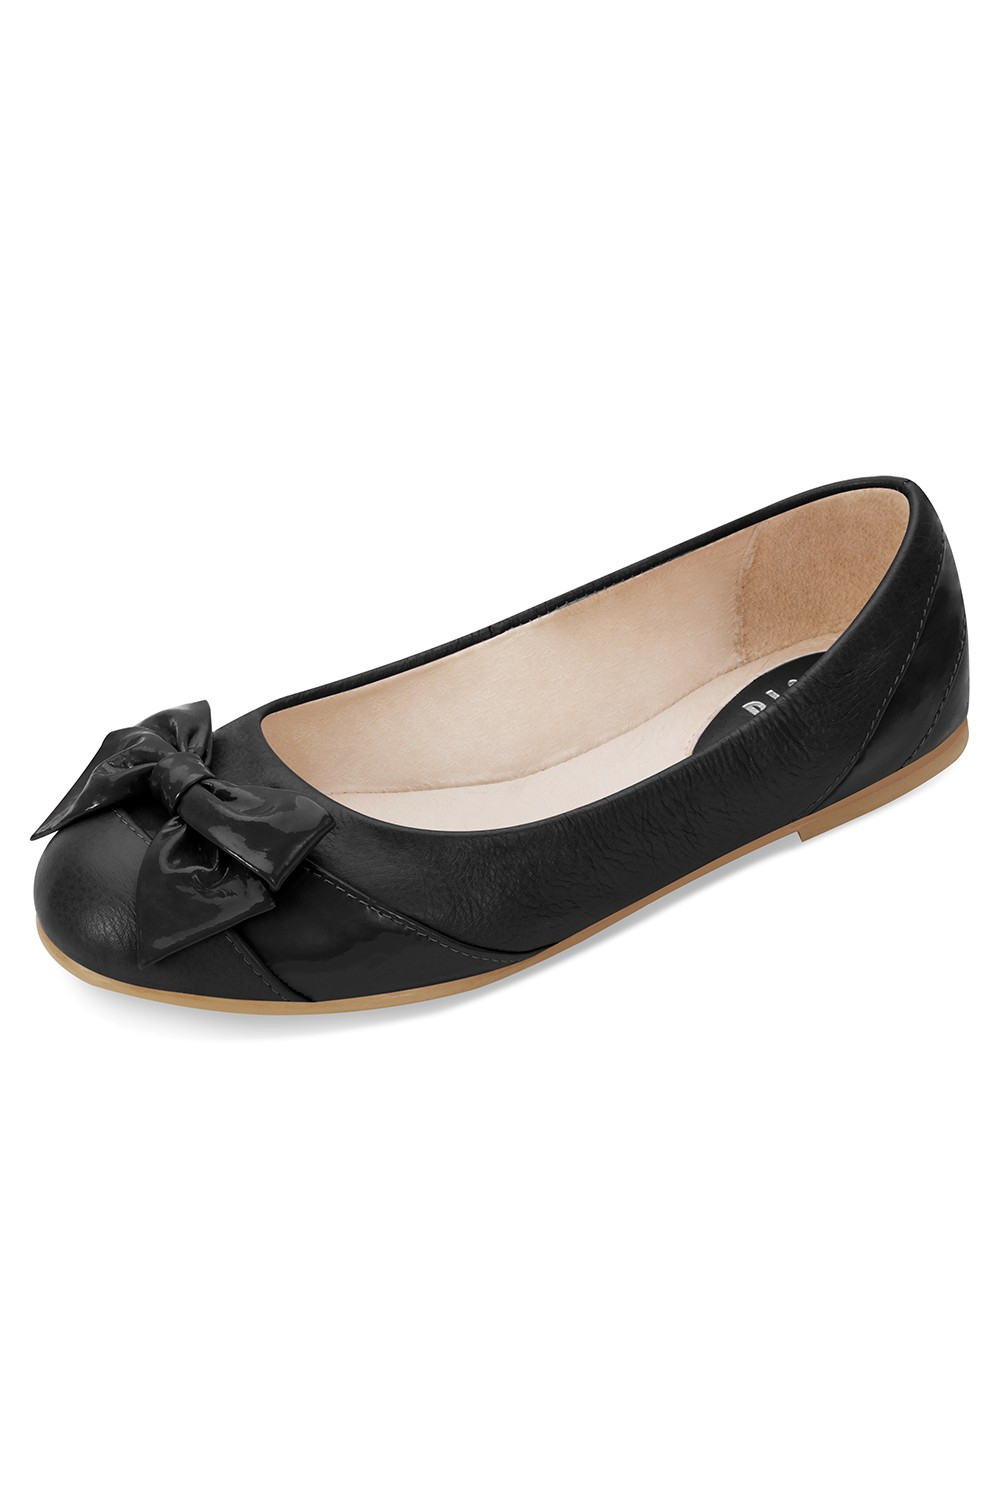 Fiochetta Suela De Piel Girls Fashion Shoes